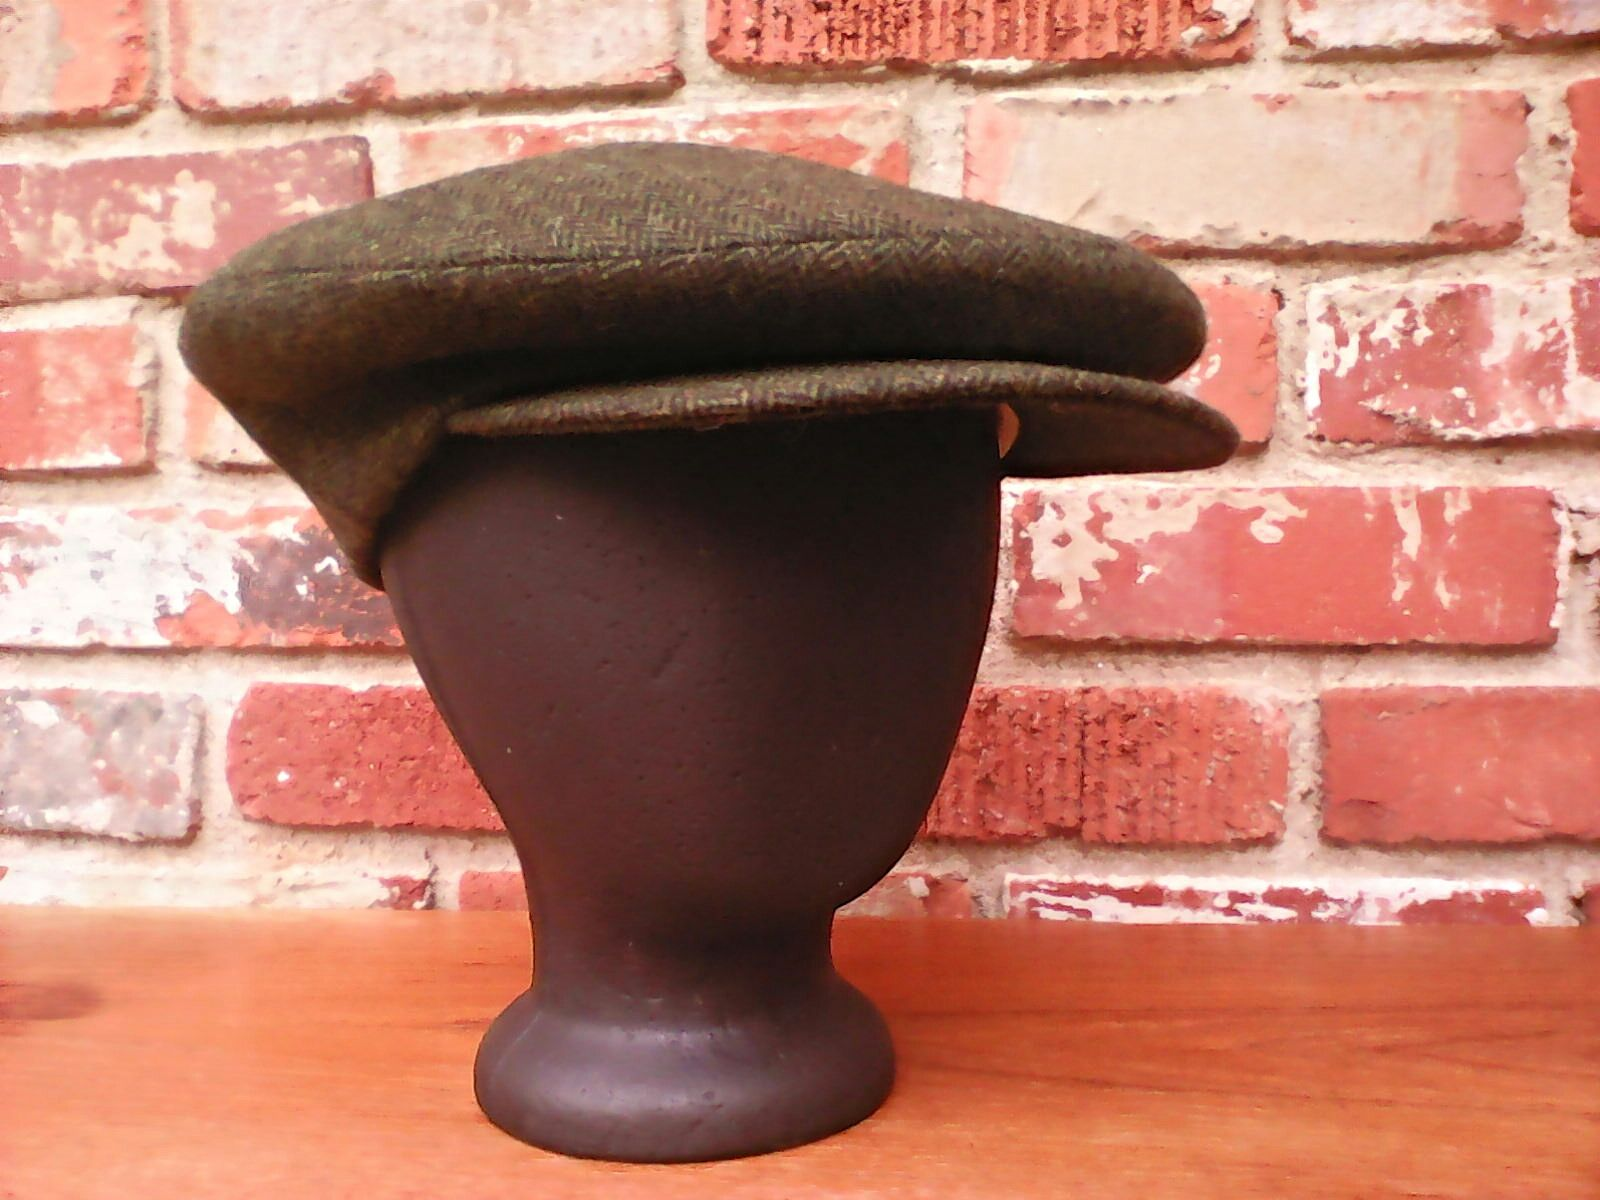 c38e93263 Custom handcrafted 1920's - 1930's style flat caps | Bespoke Hats in ...